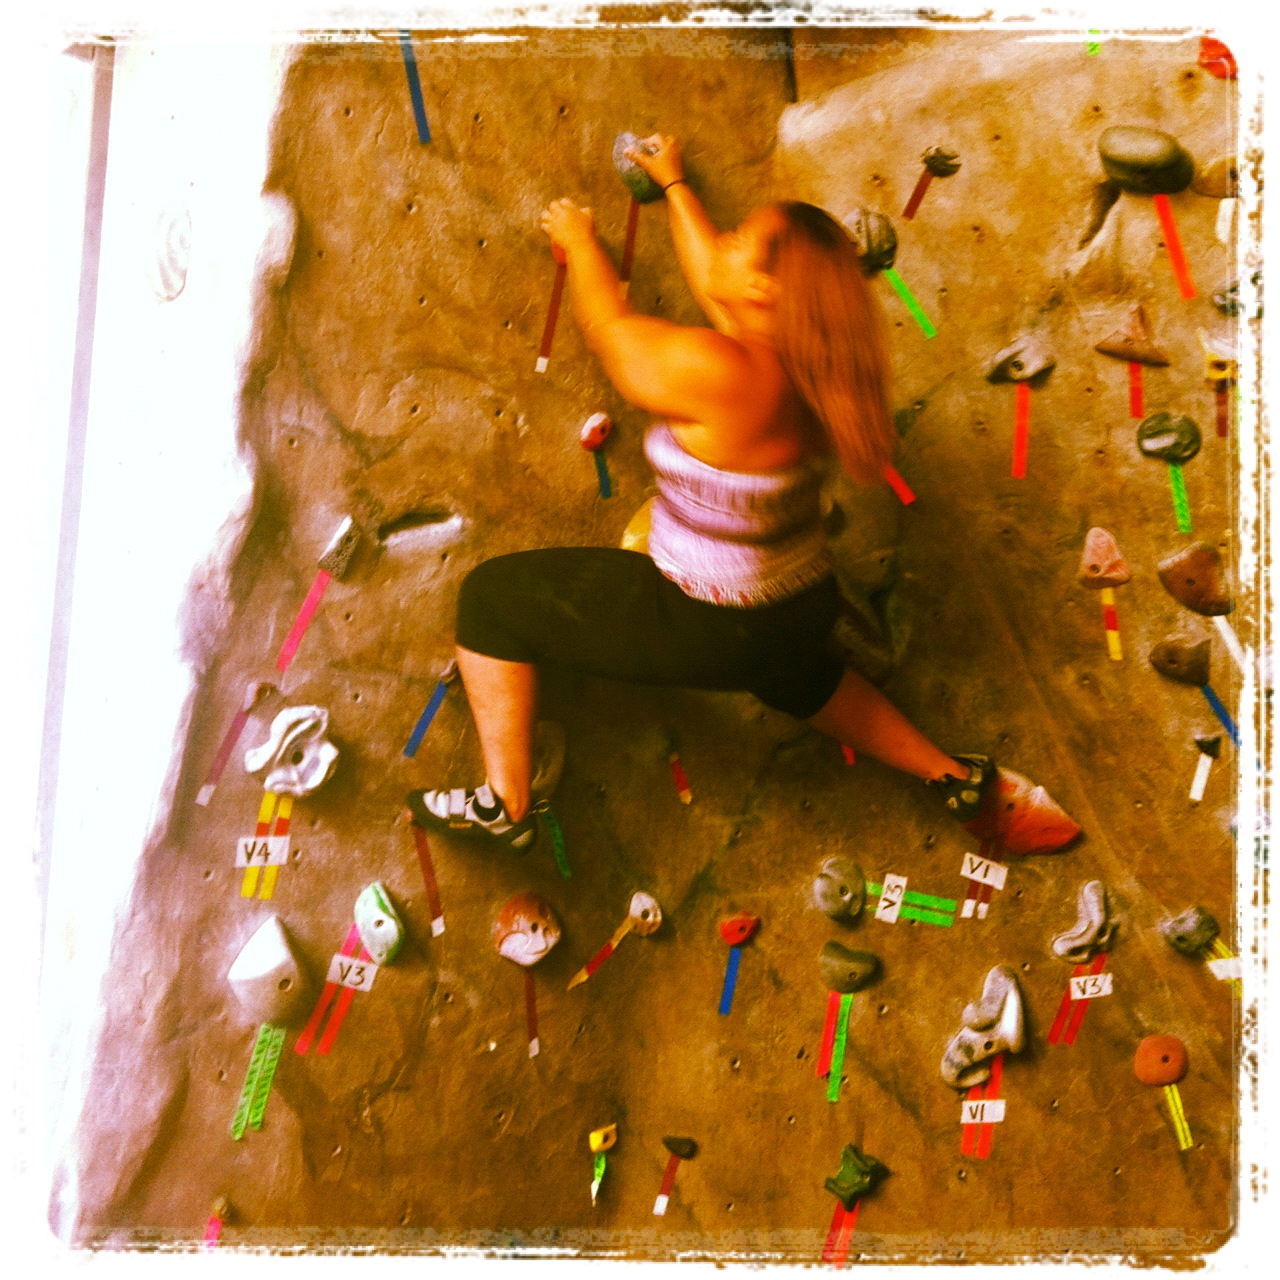 april showers may power how i get that fitness on climbingjourney